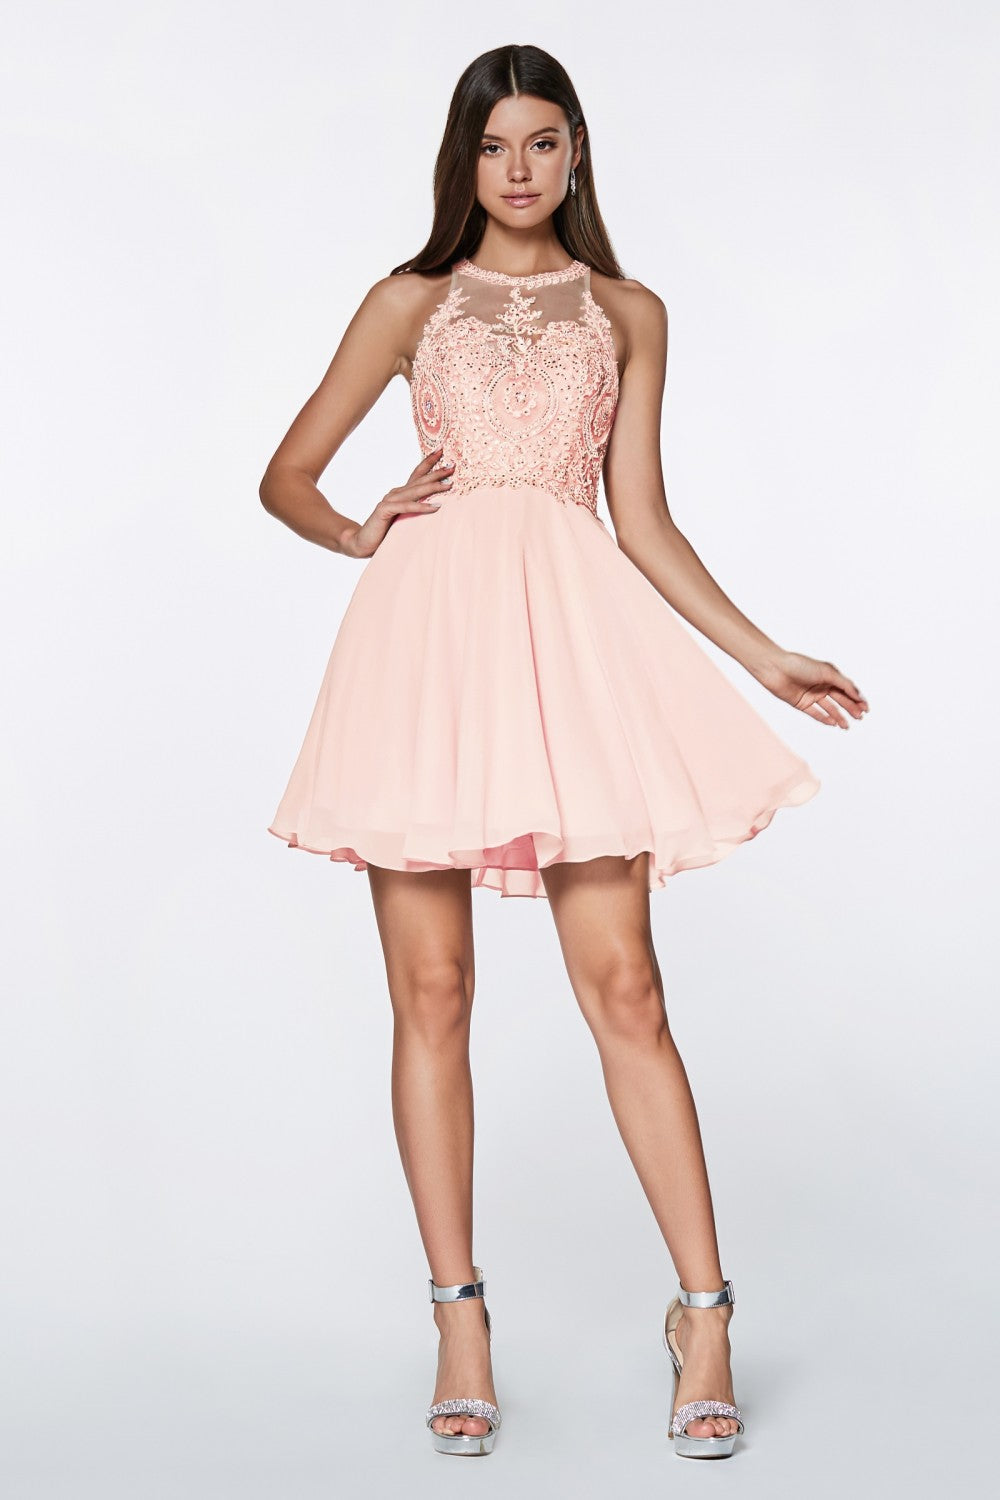 Short A-Line Dress With Chiffon Skirt And Beaded Lace Halter Bodice